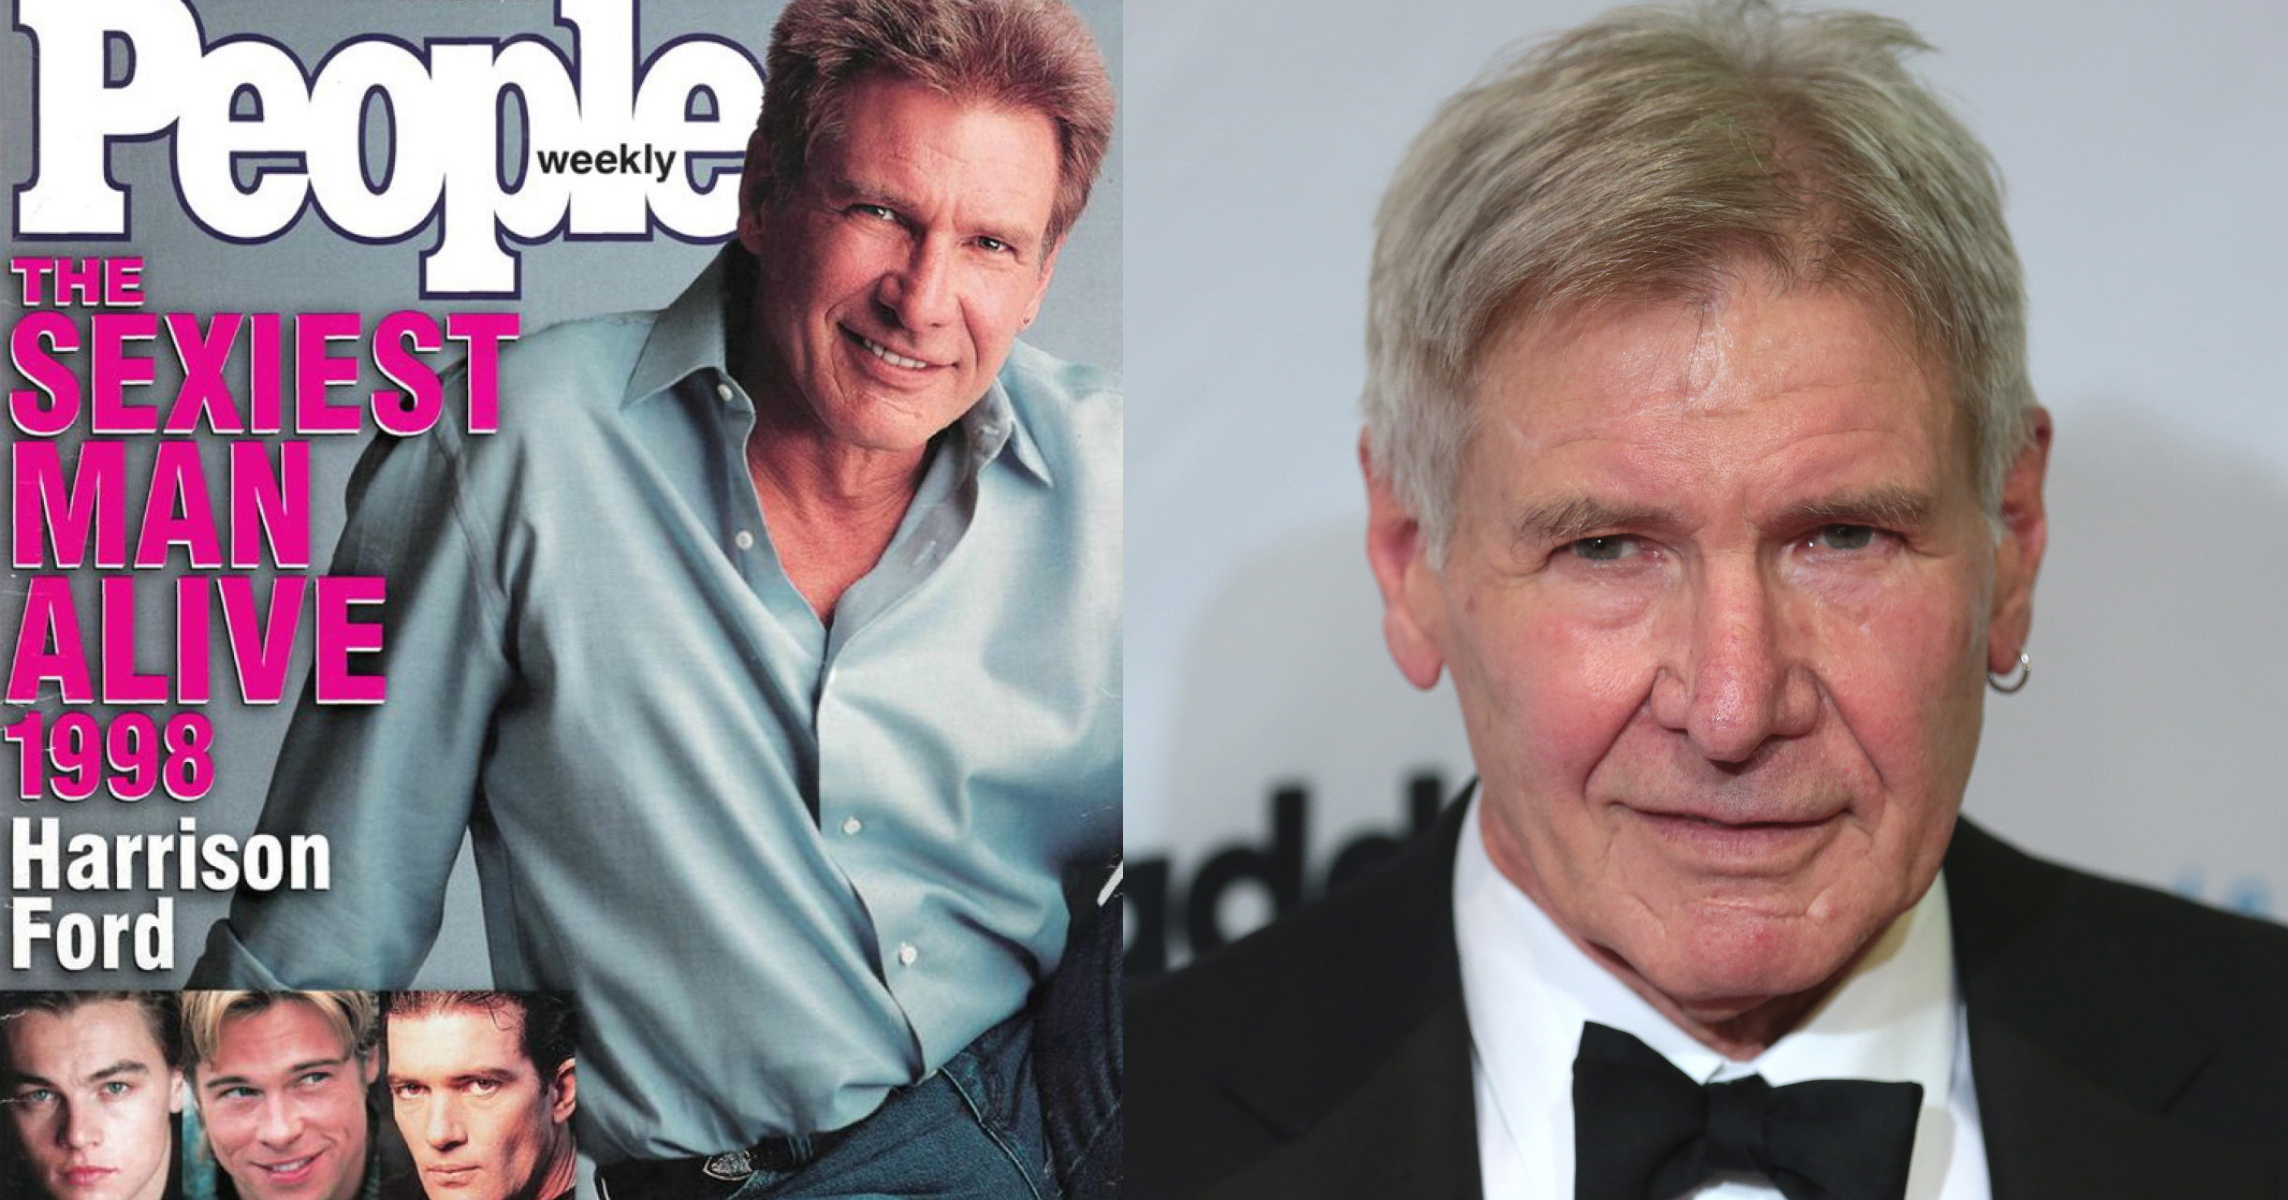 Harrison Ford facts